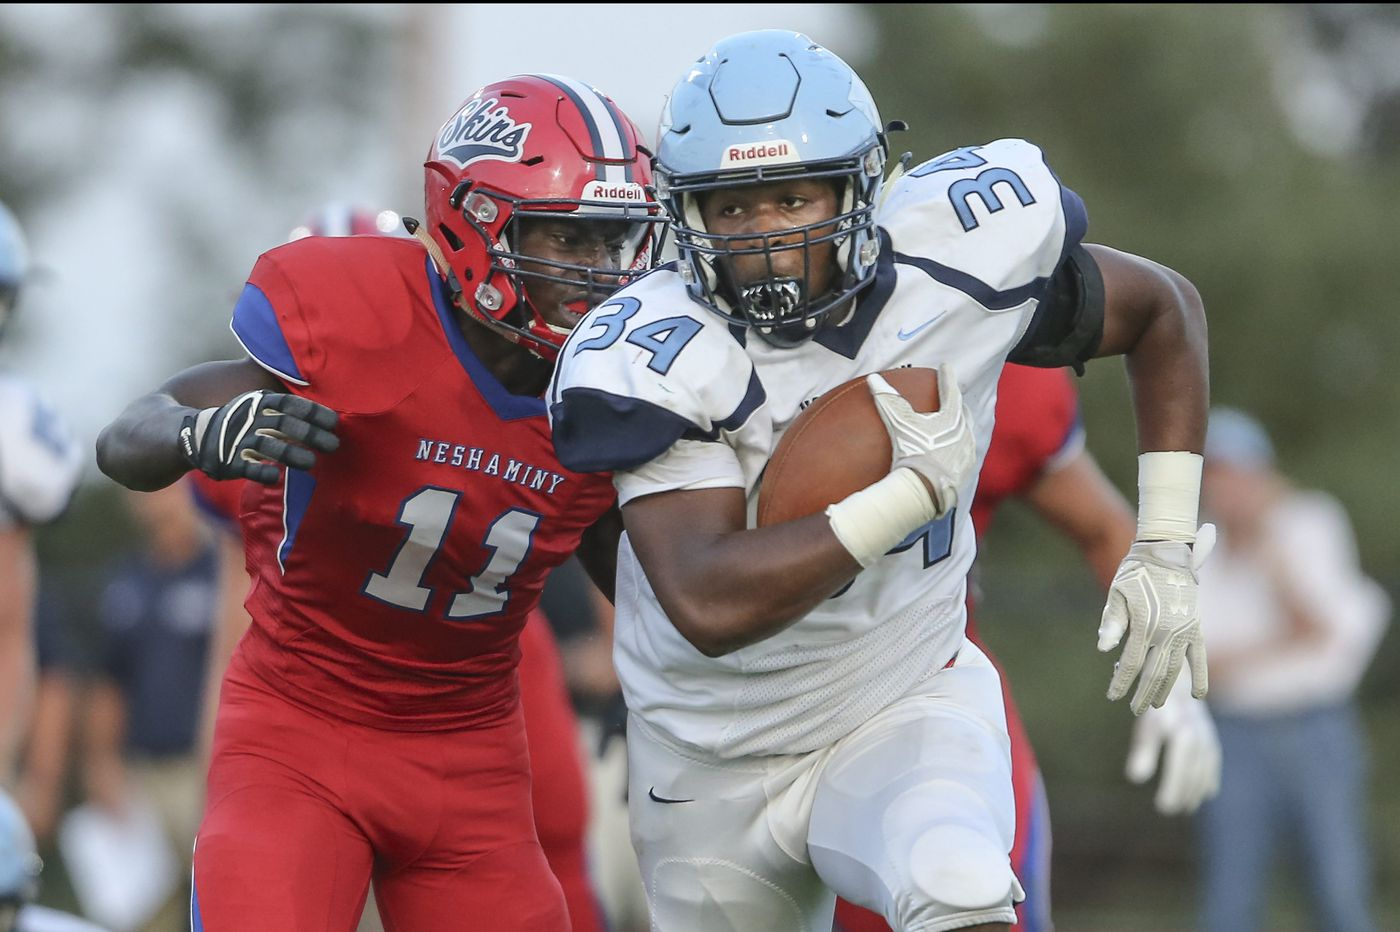 Friday football preview: Rain could impact district playoffs and league finals